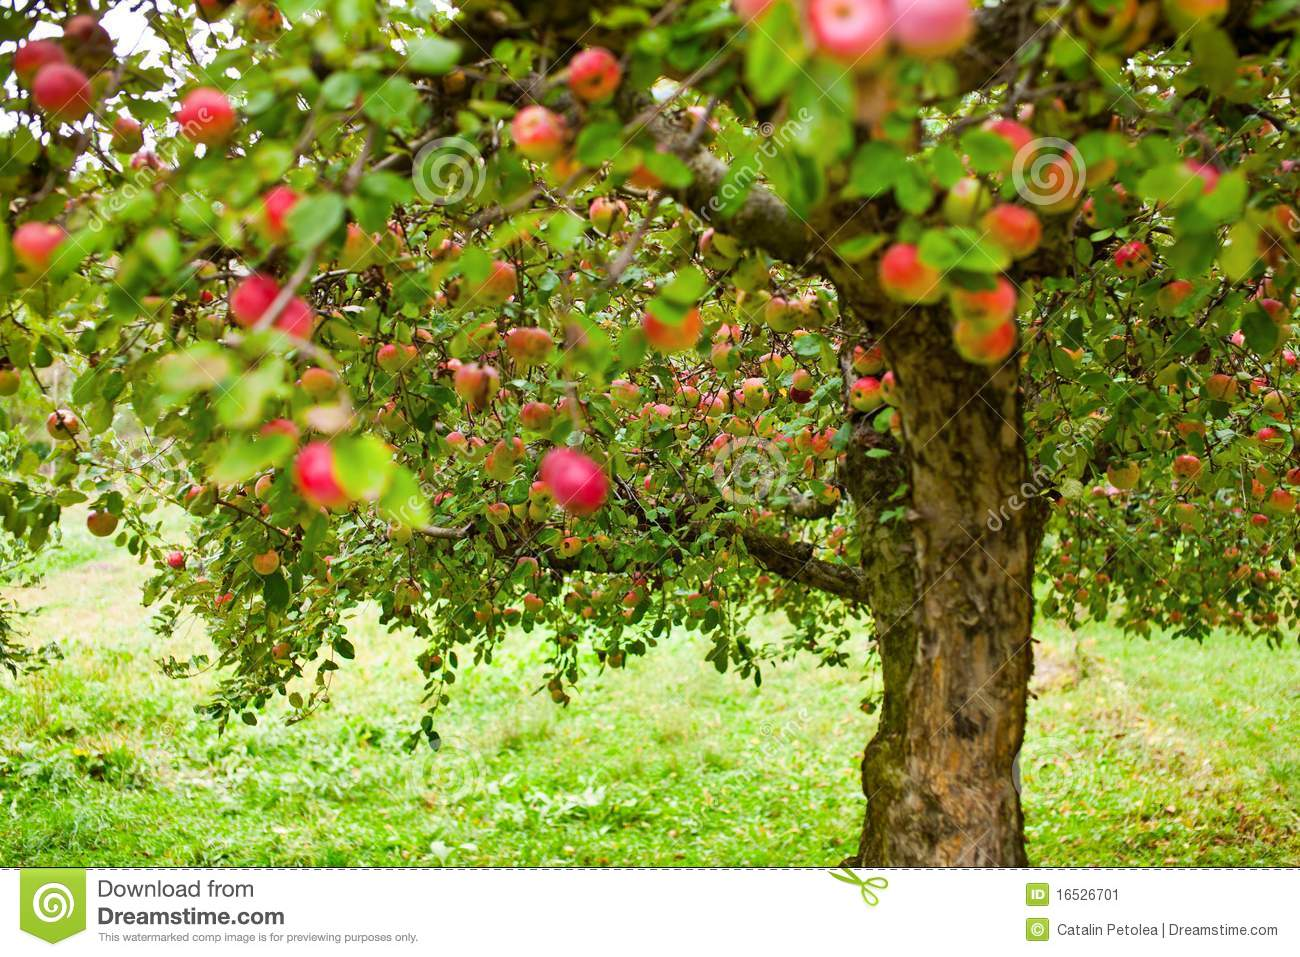 Apple Trees Orchard Stock Image - Image: 16526701